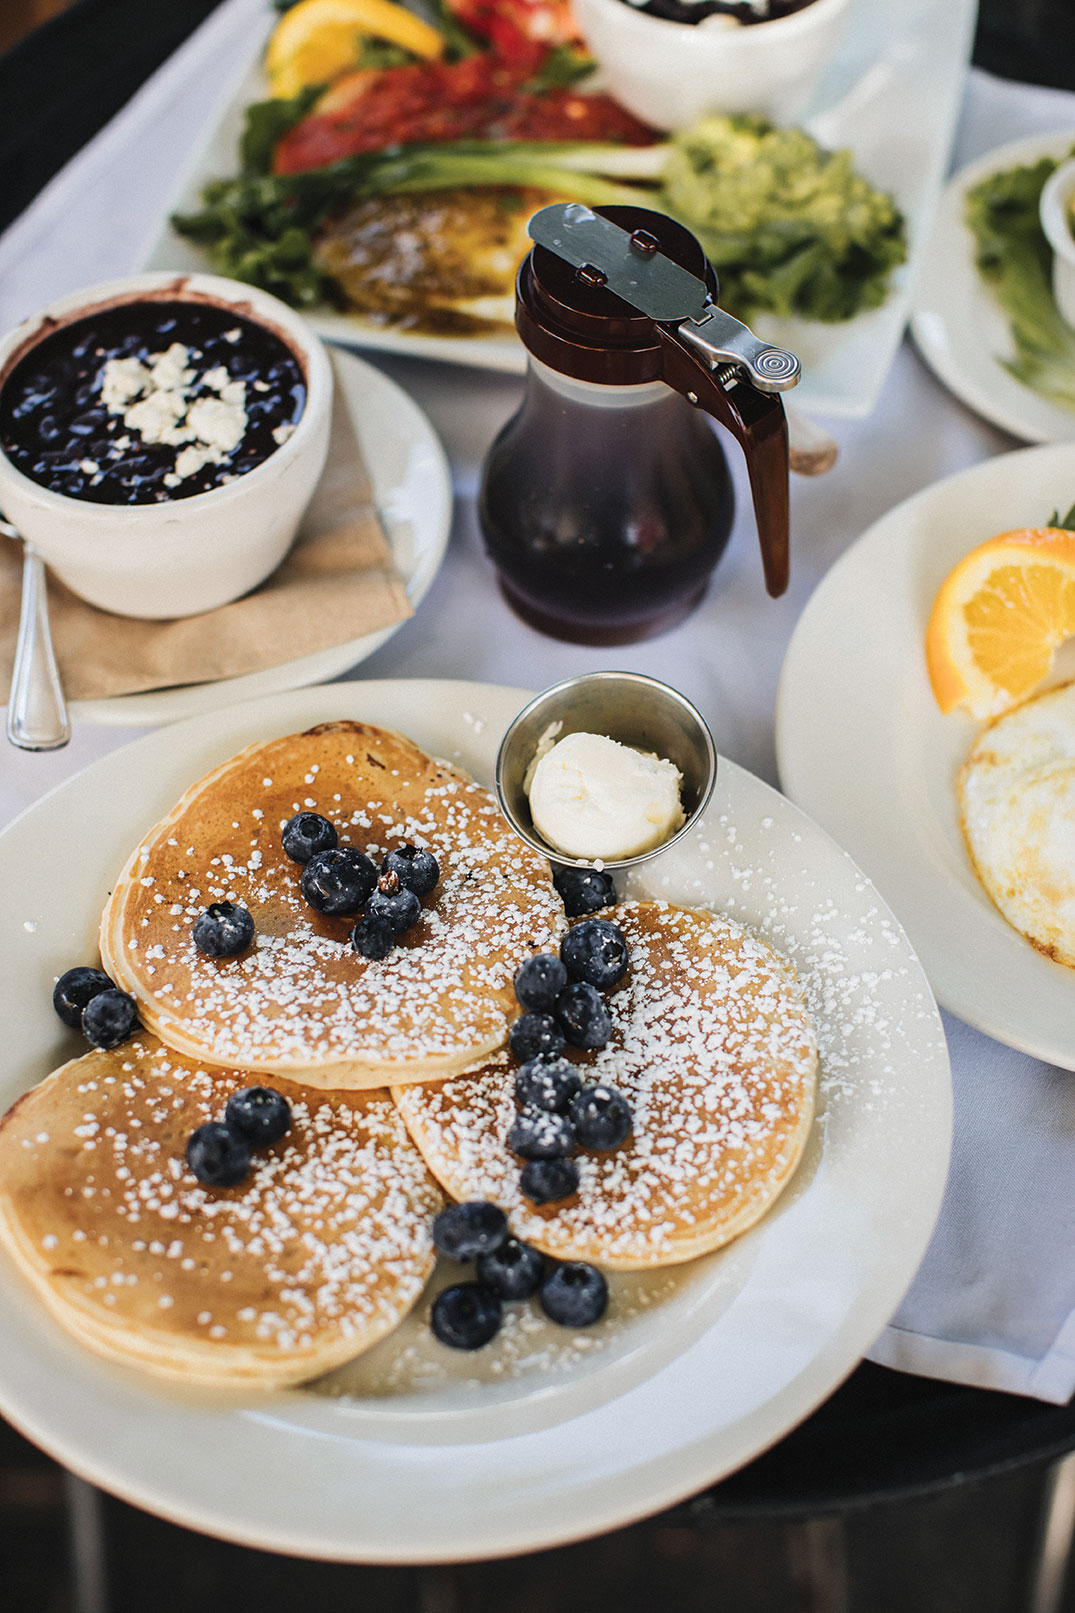 Pancakes at Claire's on Cedros in San Diego